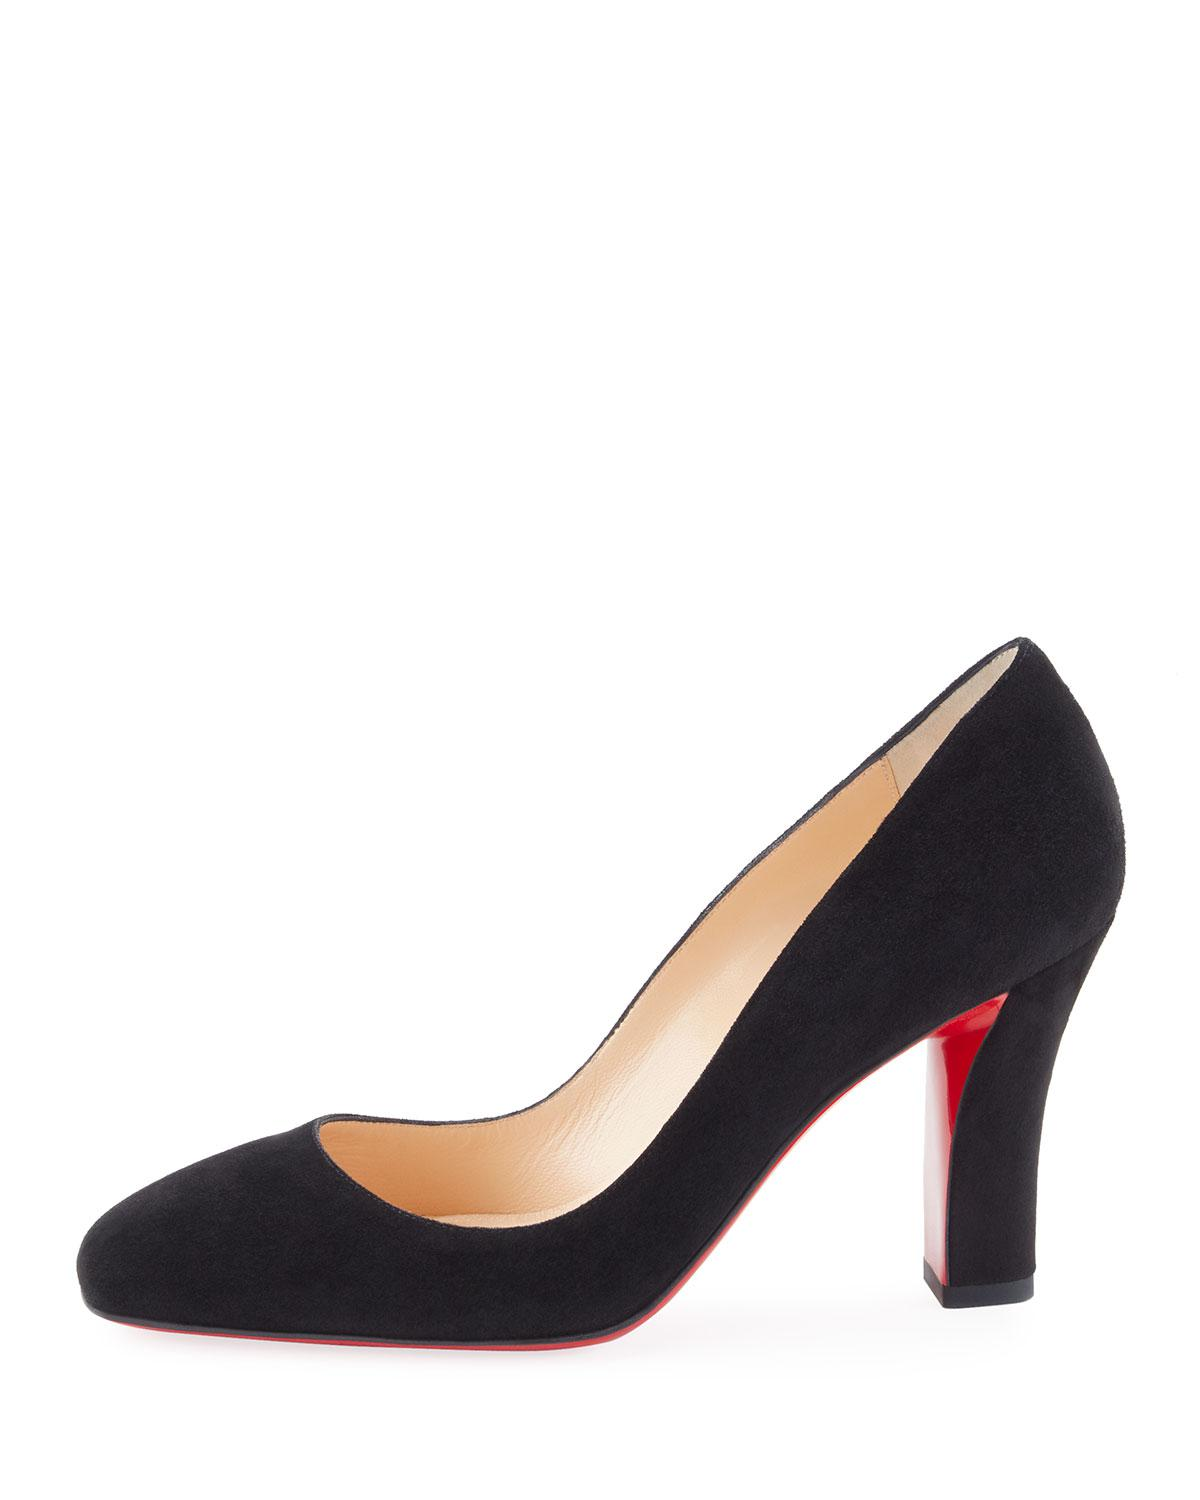 3964aafb85f8 Lyst - Christian Louboutin Viva Suede 85mm Red Sole Pump in Black